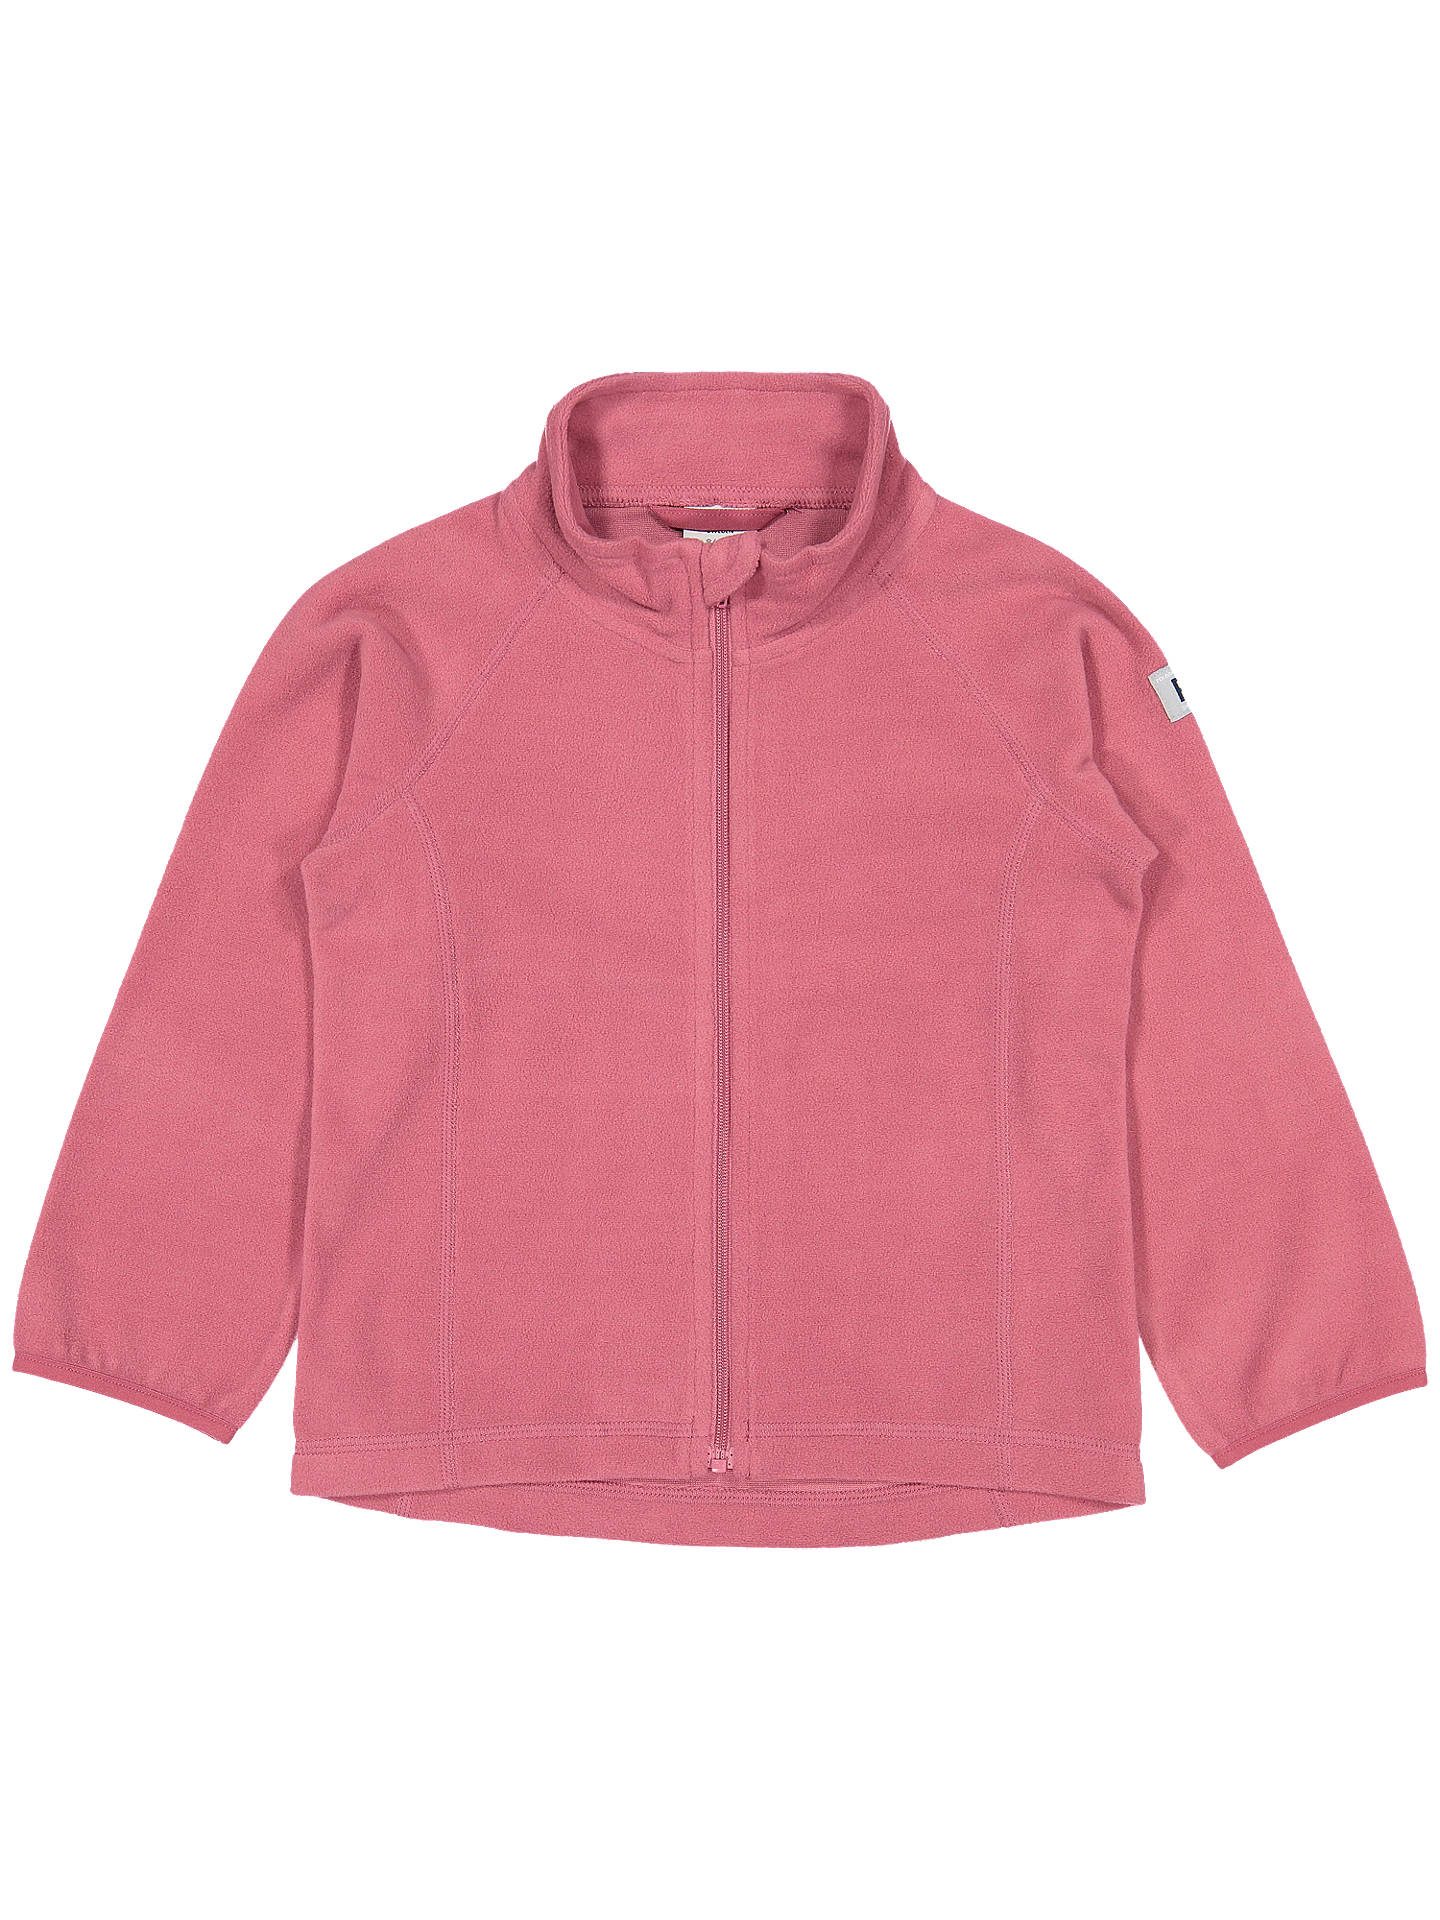 Buy Polarn O. Pyret Baby's Zip Fleece, Pink, 6-12 months Online at johnlewis.com